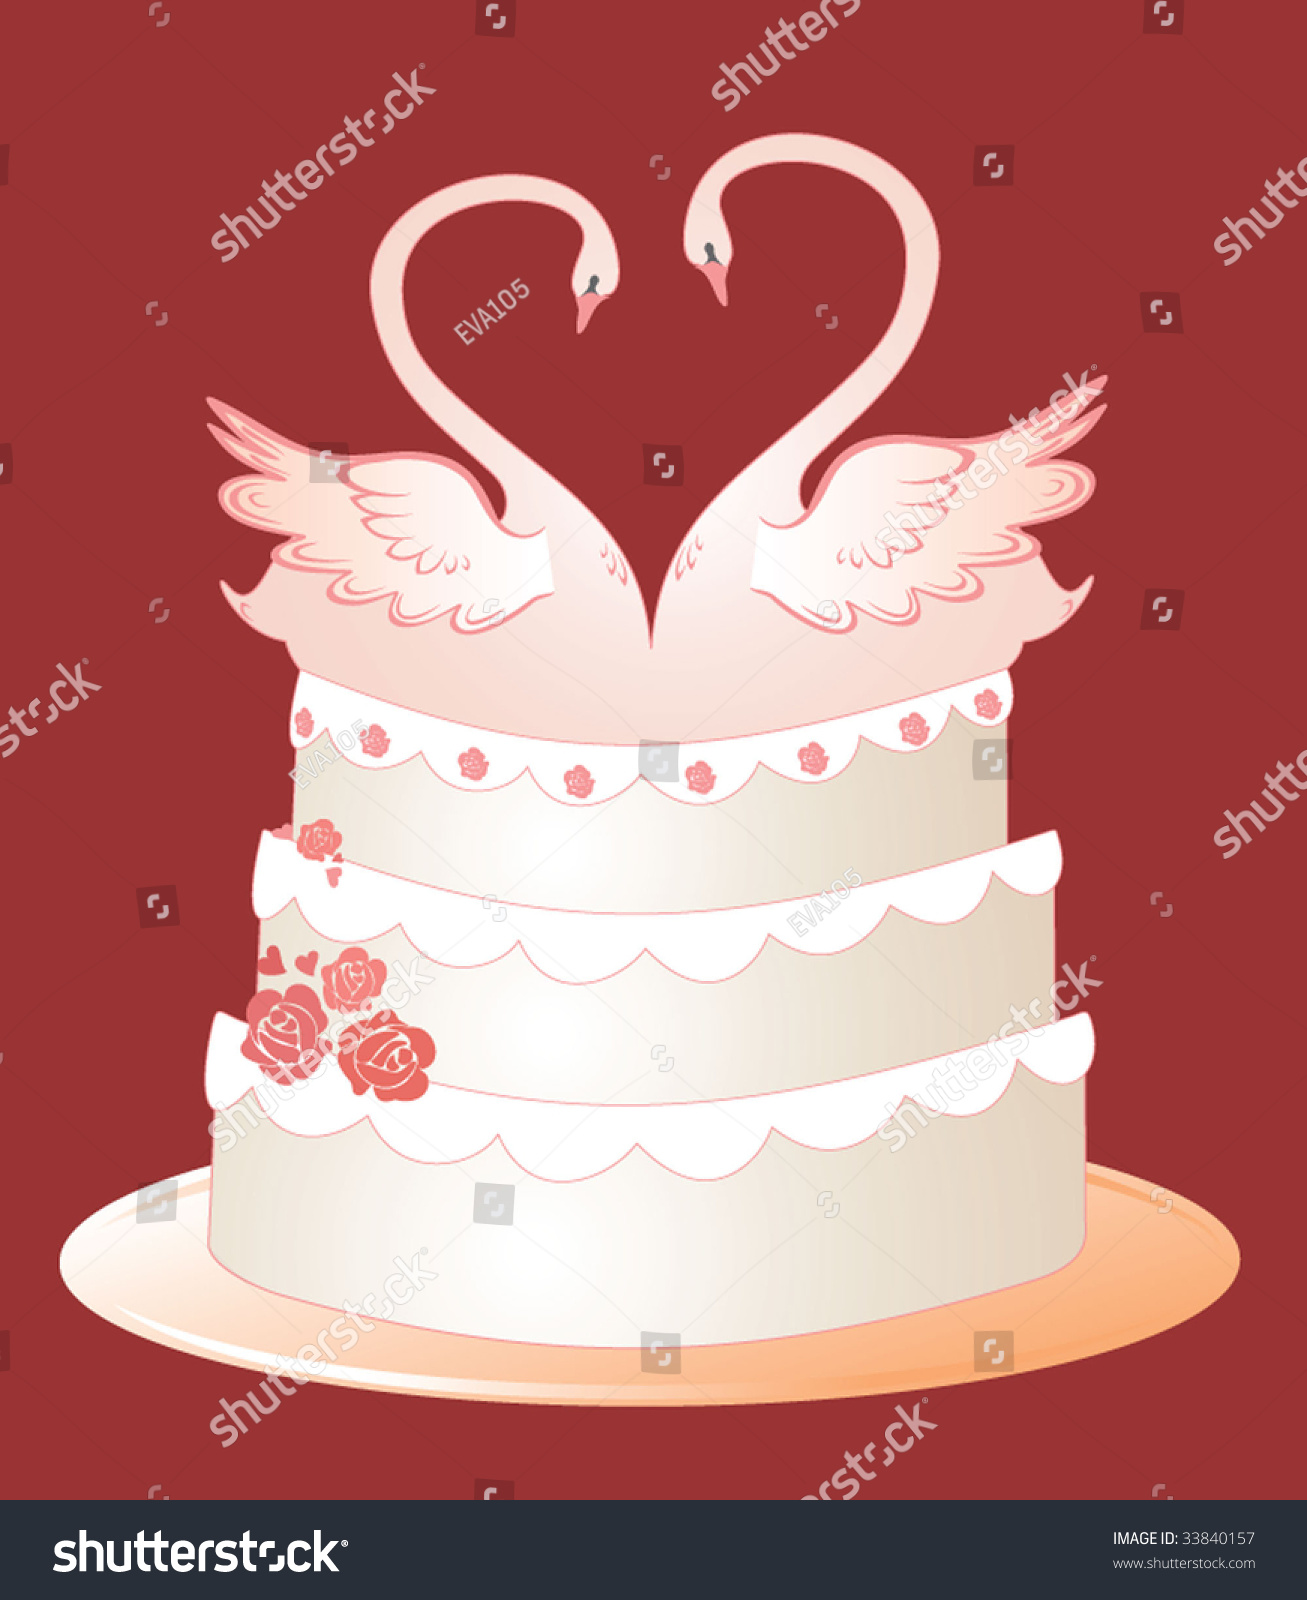 wedding cake vector wedding cake stock vector illustration 33840157 26758